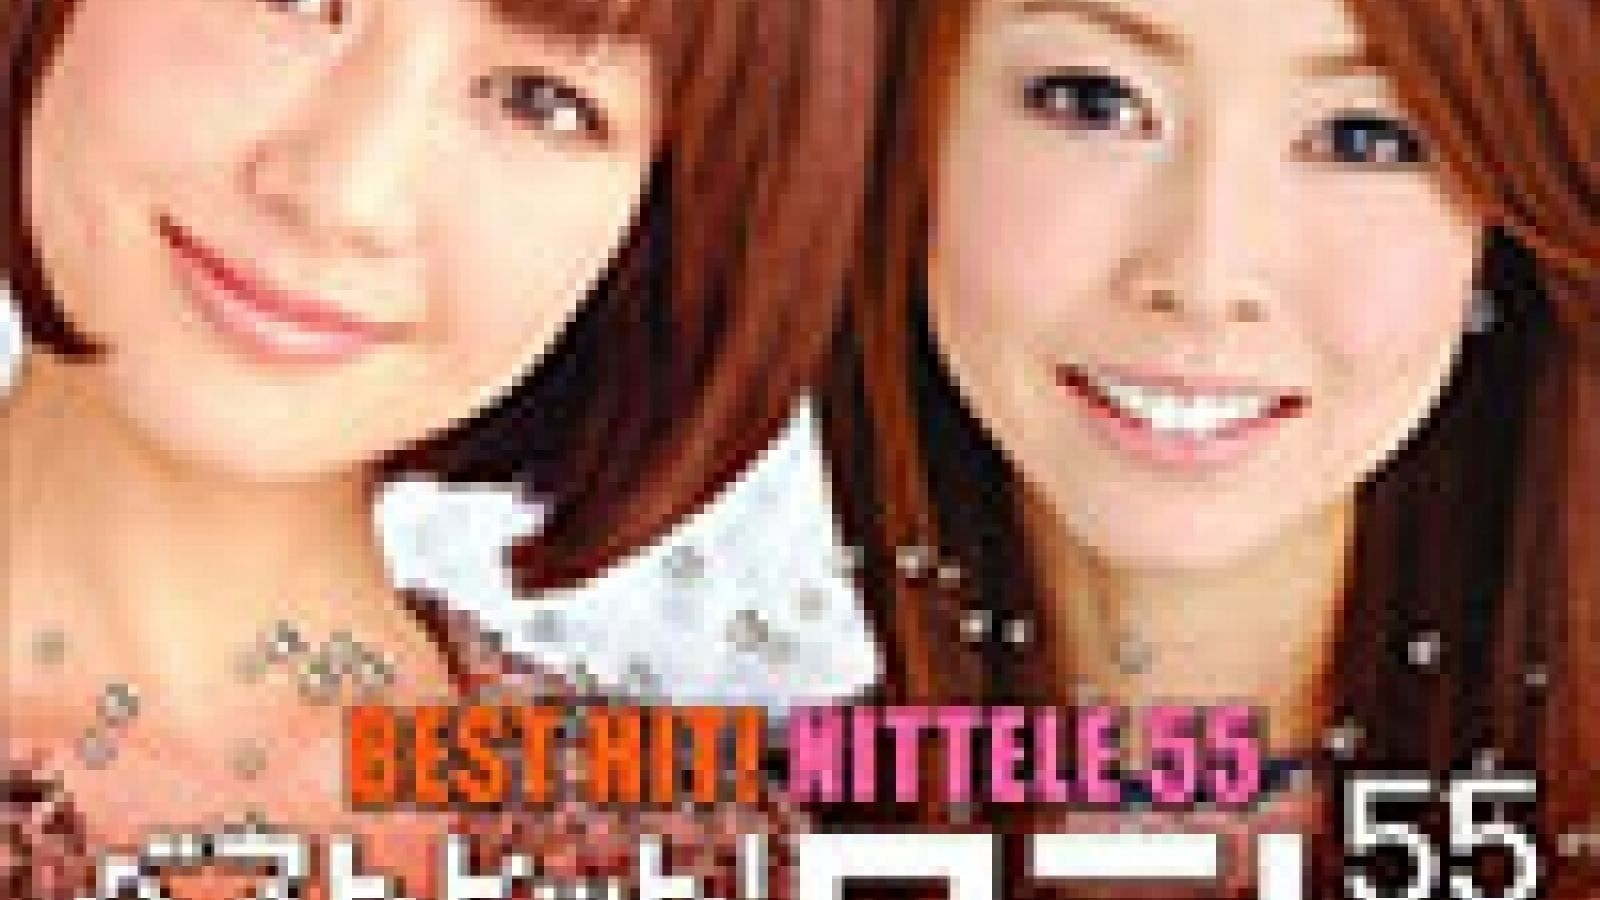 Best Hit! Nittele 55 avex Edition © Avex Entertainment Inc.